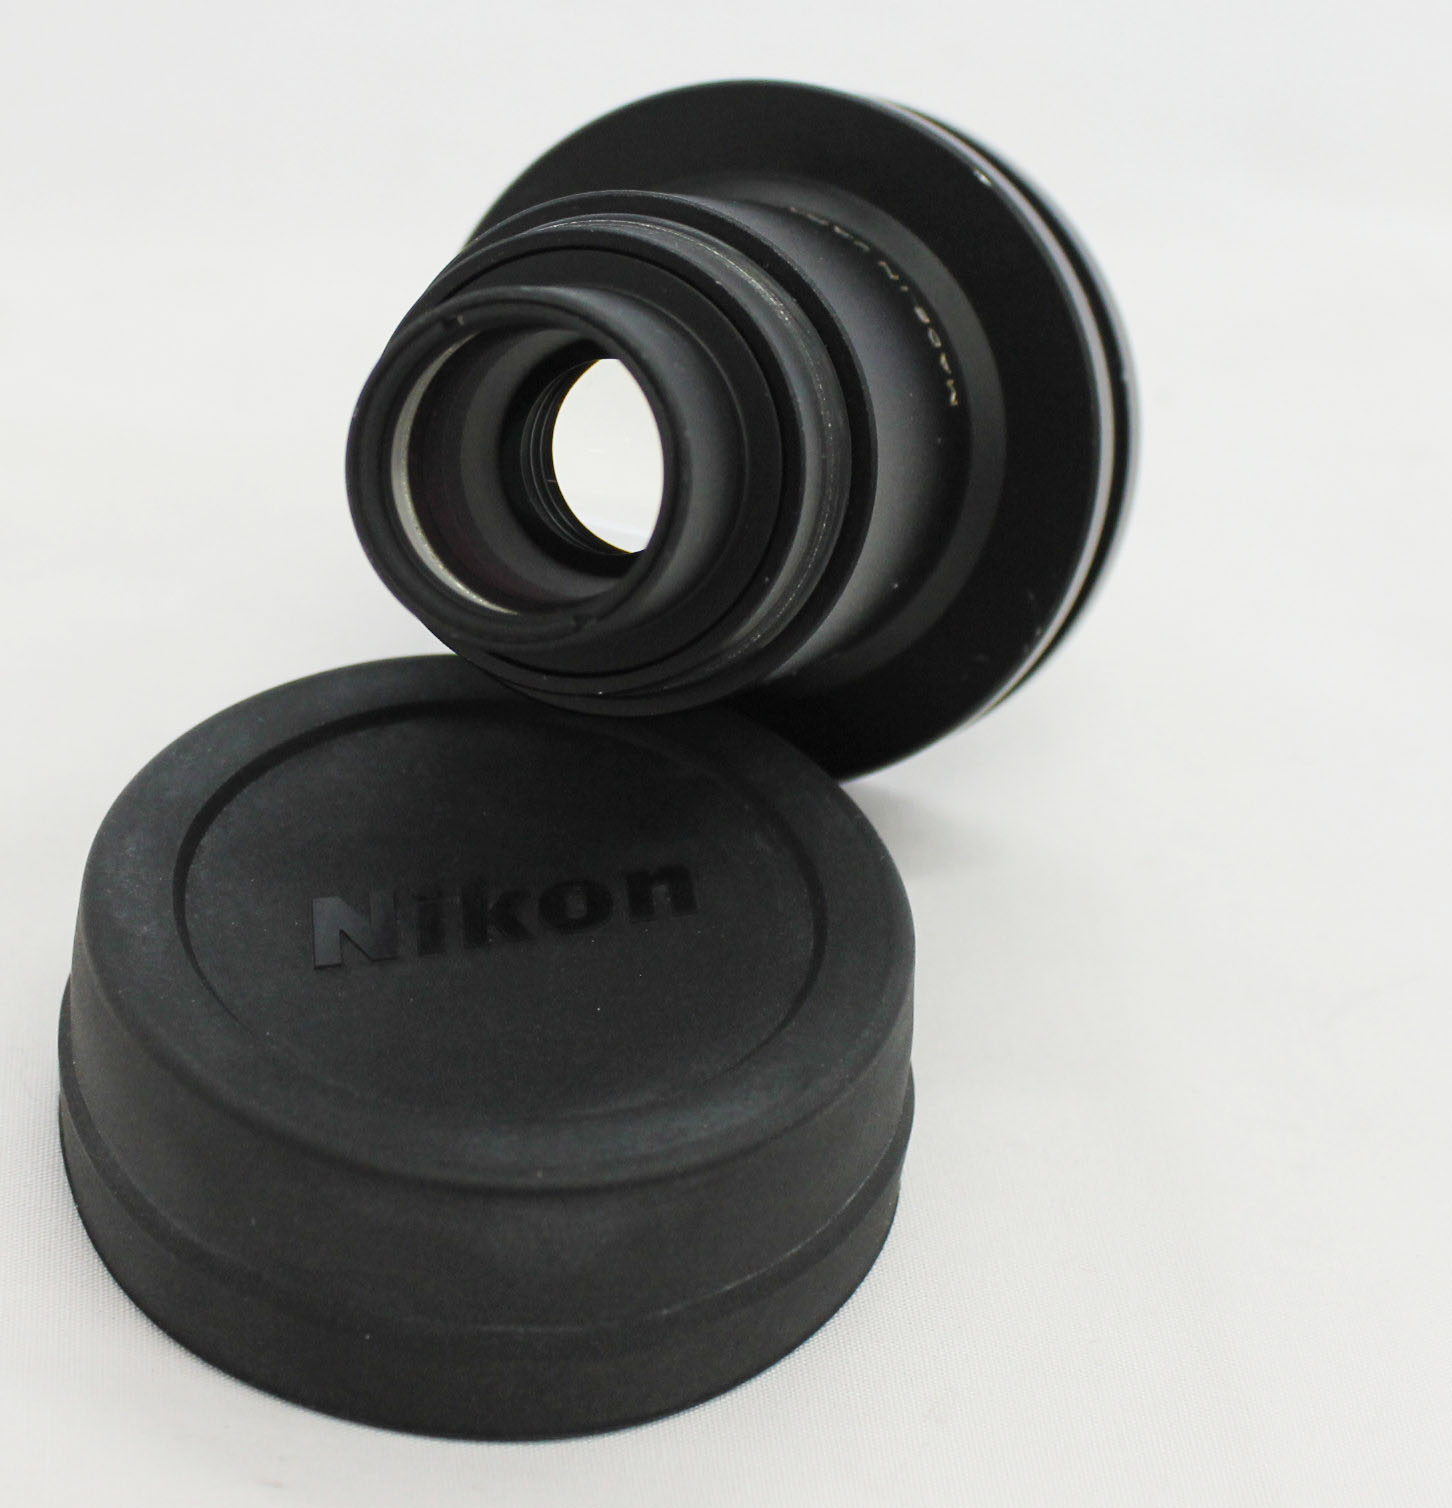 Nikon Fieldscope Eyepiece Wide DS 27x 40X 50x from Japan Photo 4